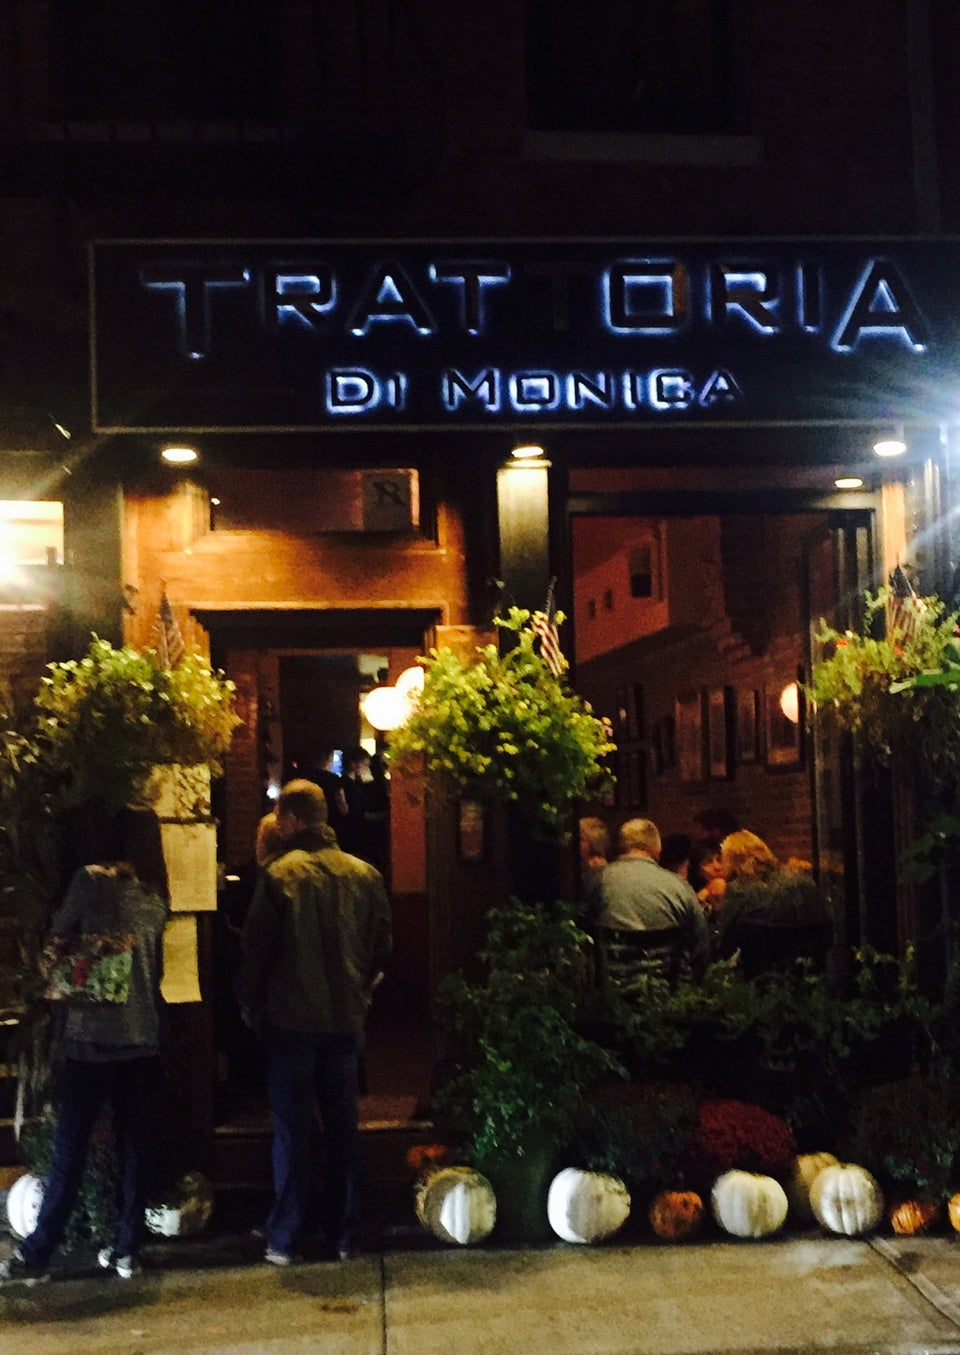 Photo of Vinoteca di Monica